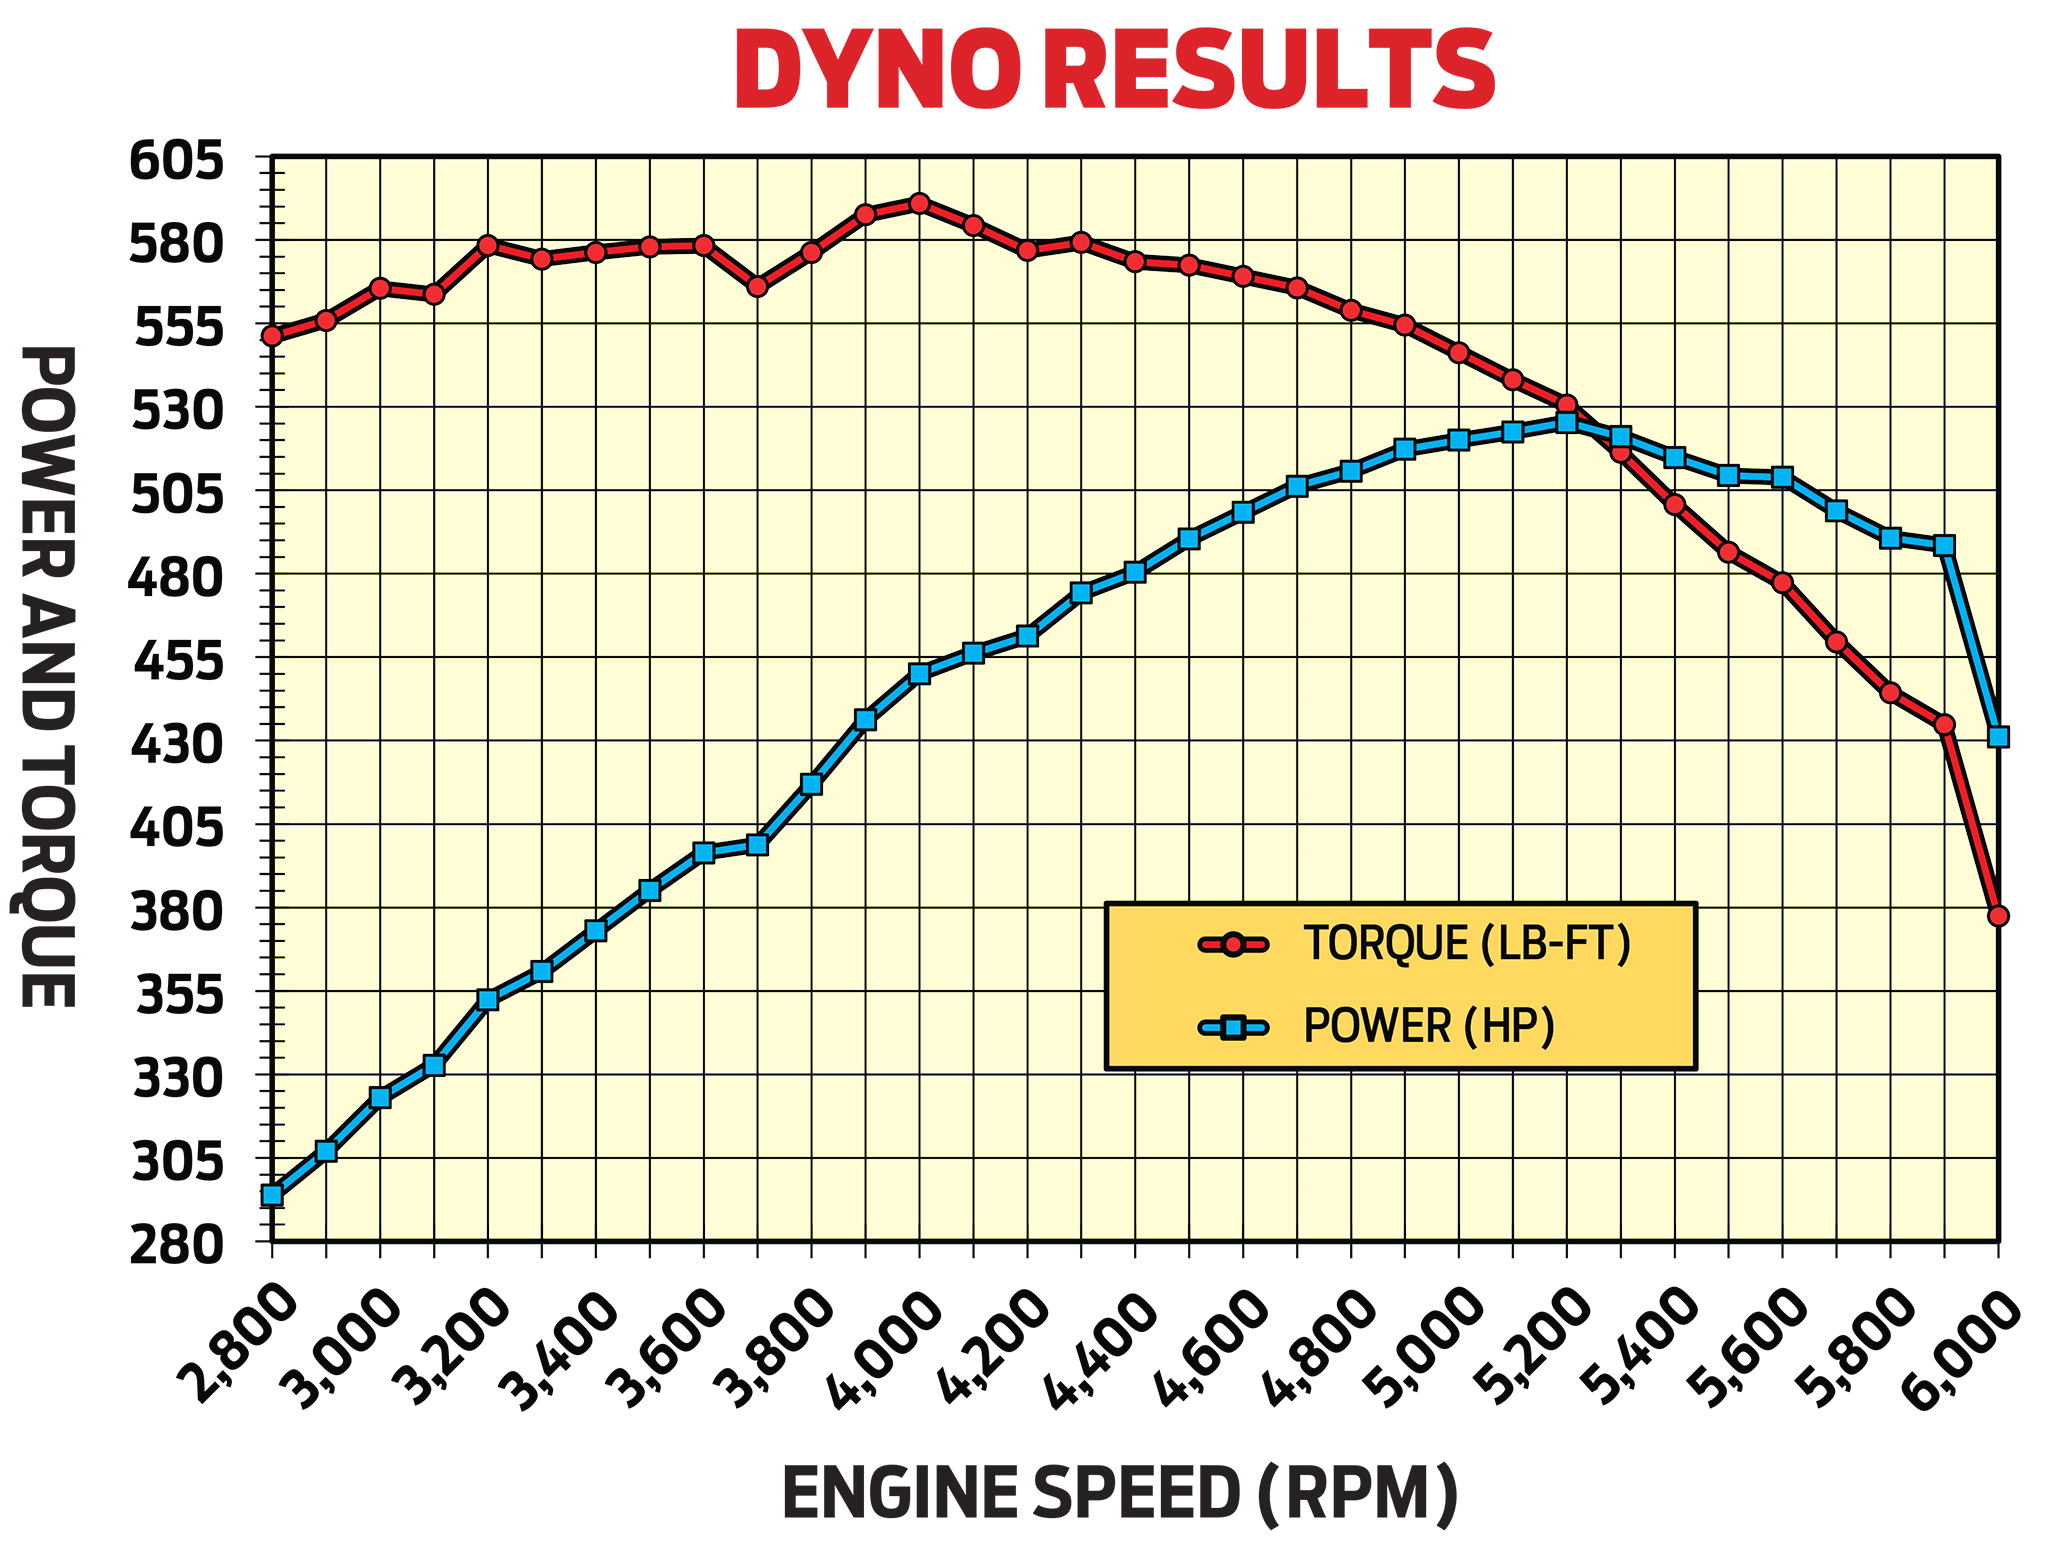 in preliminary tests on advanced engine concepts engine dyno rob s 481ci olds peaked at 525 3